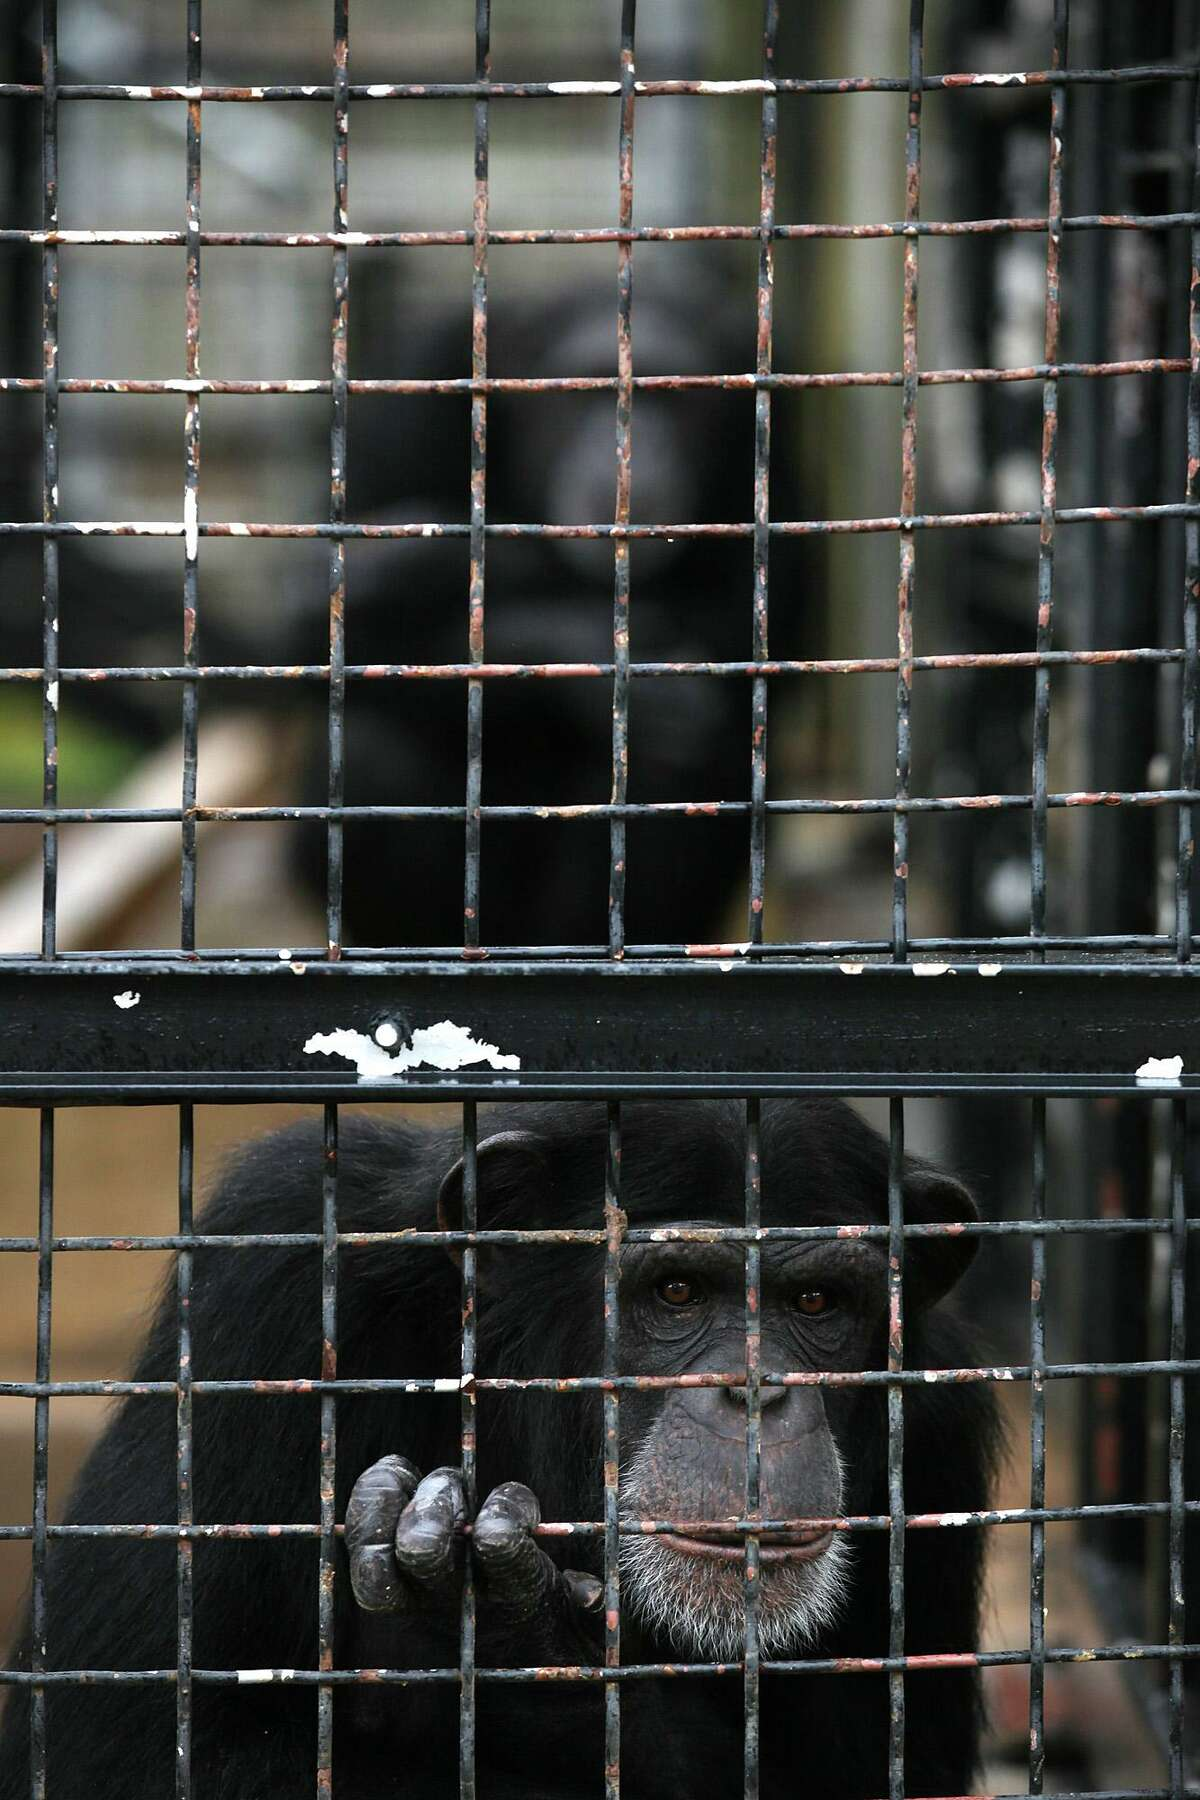 Chimpanzees hang out in an enclosure at Primarily Primates, a nonprofit sanctuary that takes in animals from research centers, on Dec. 15, 2011. A chimpanzee, several lemurs, monkeys and other primates died Monday after the facility lost electricity and temperatures dipped into the low teens.